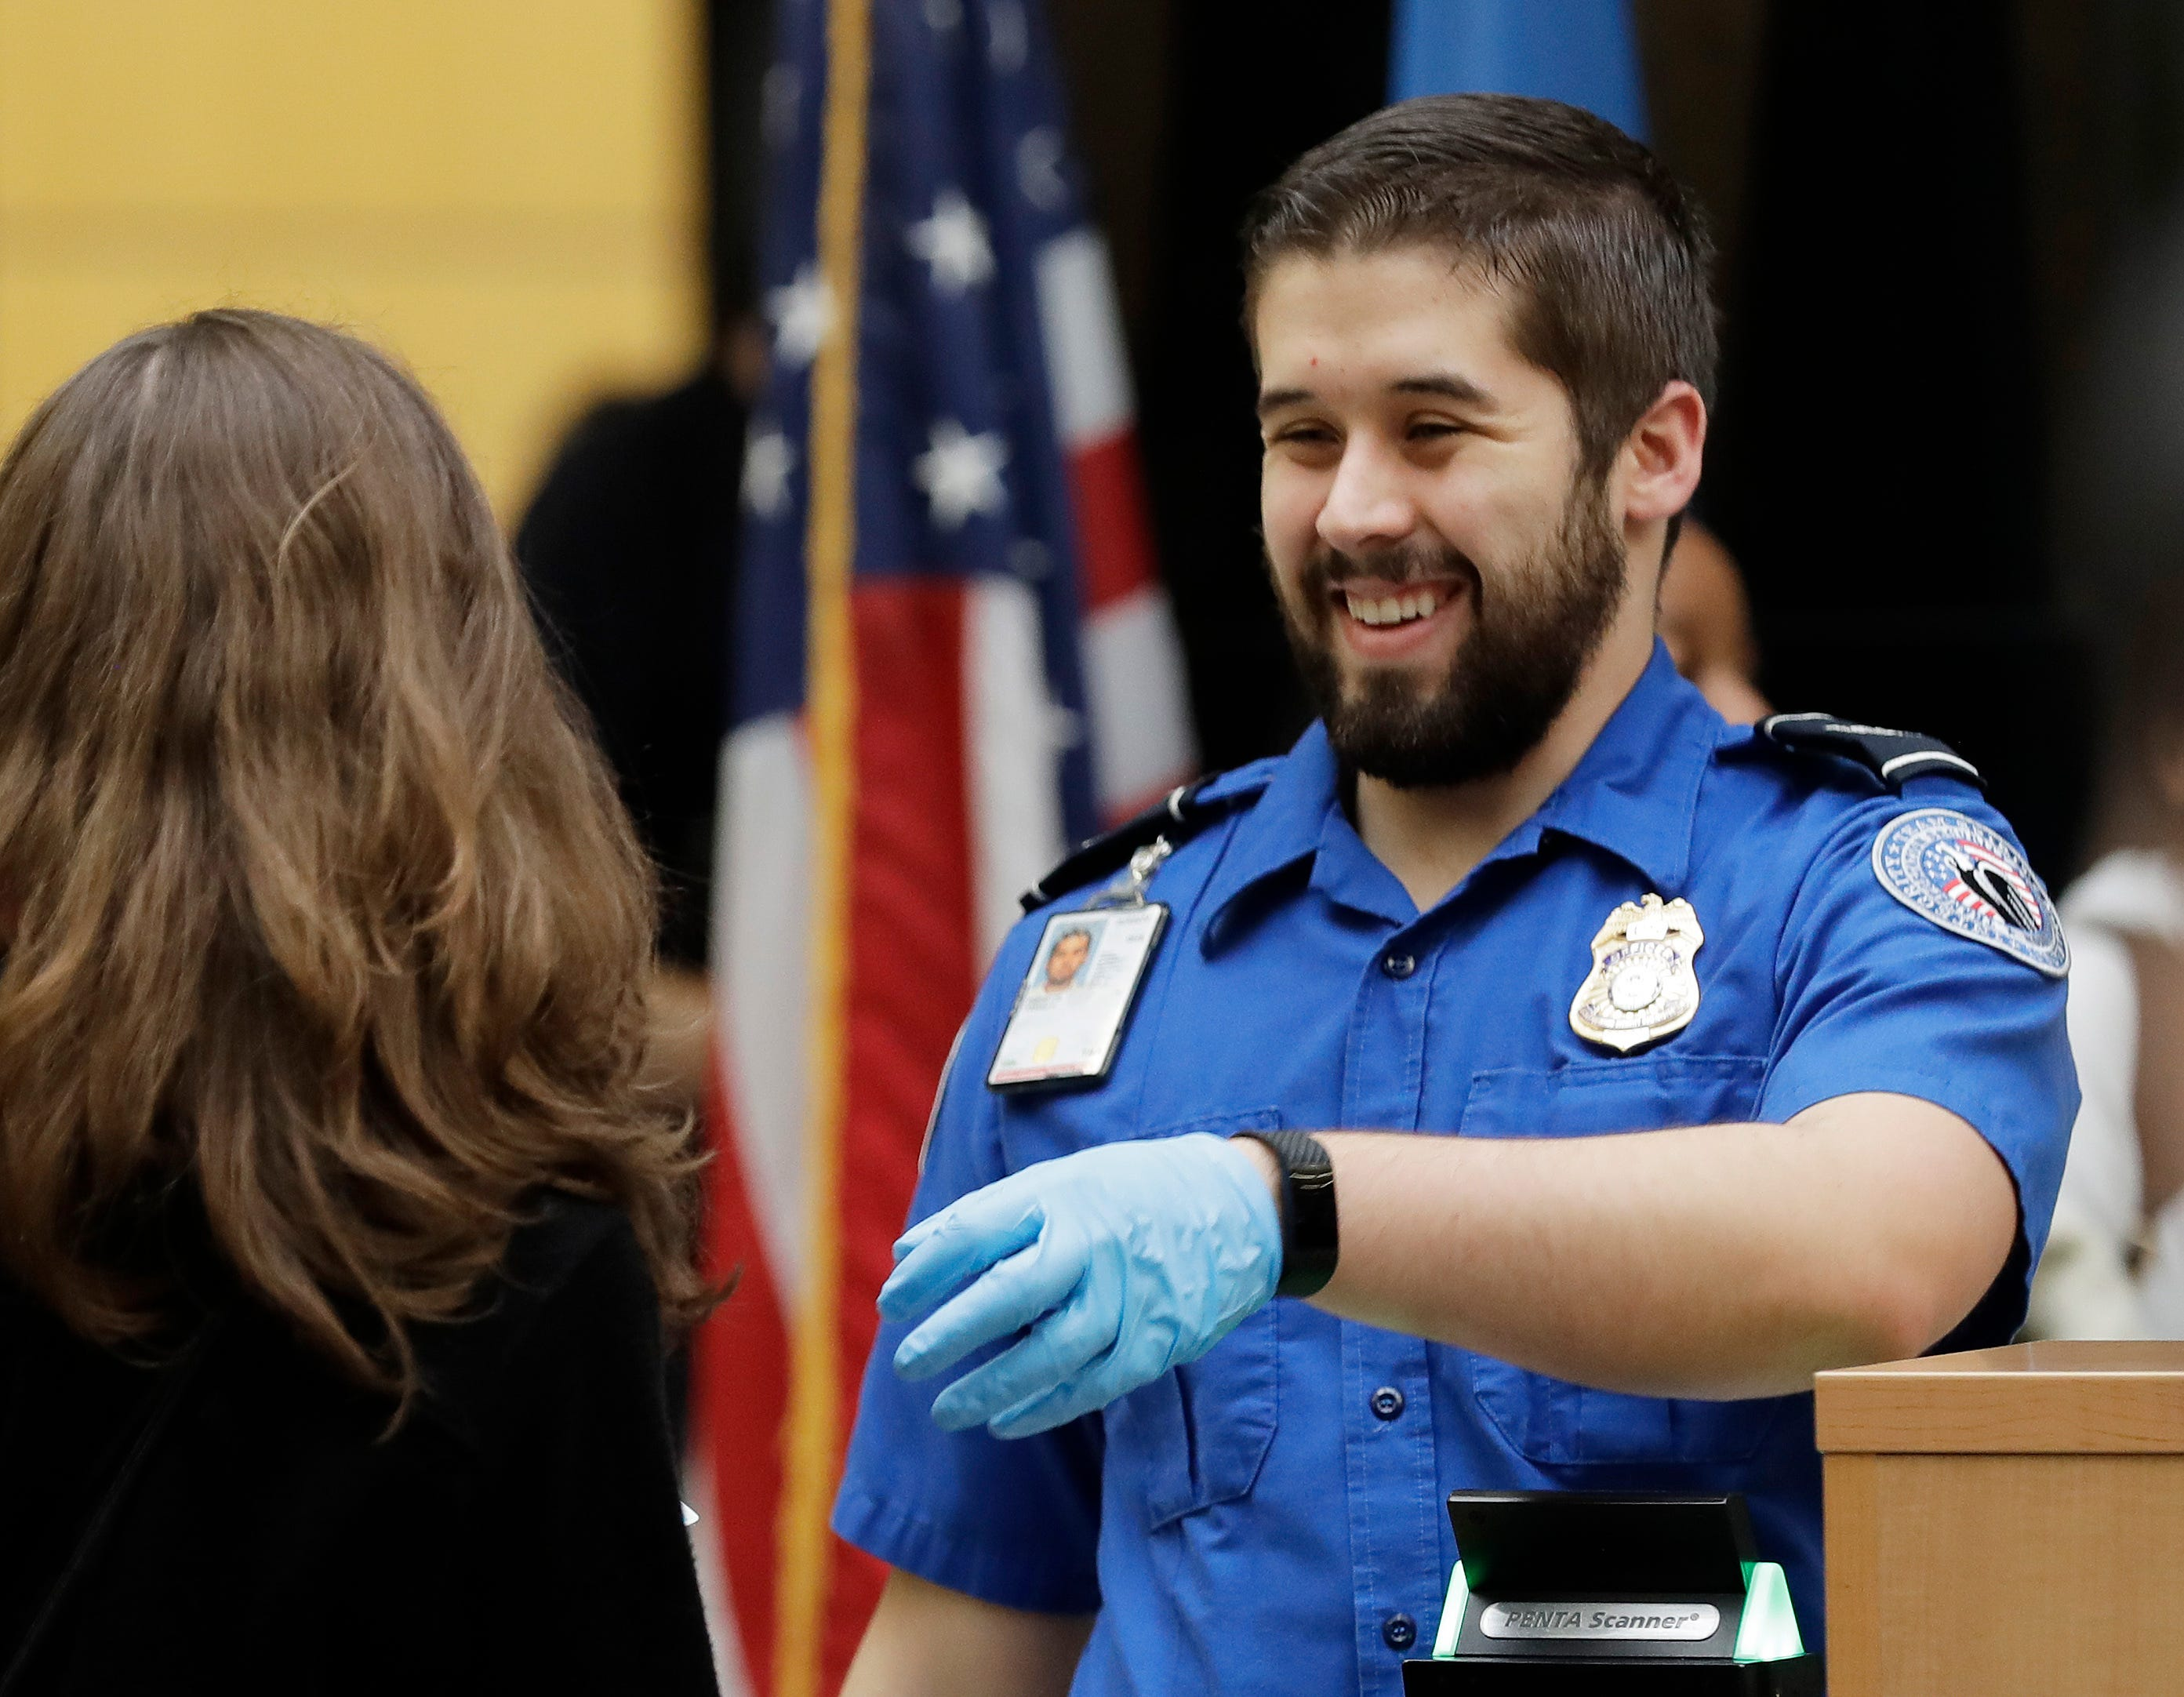 A TSA worker checks travelers' boarding passes and identification on Jan. 25, 2019, at Seattle-Tacoma International Airport.